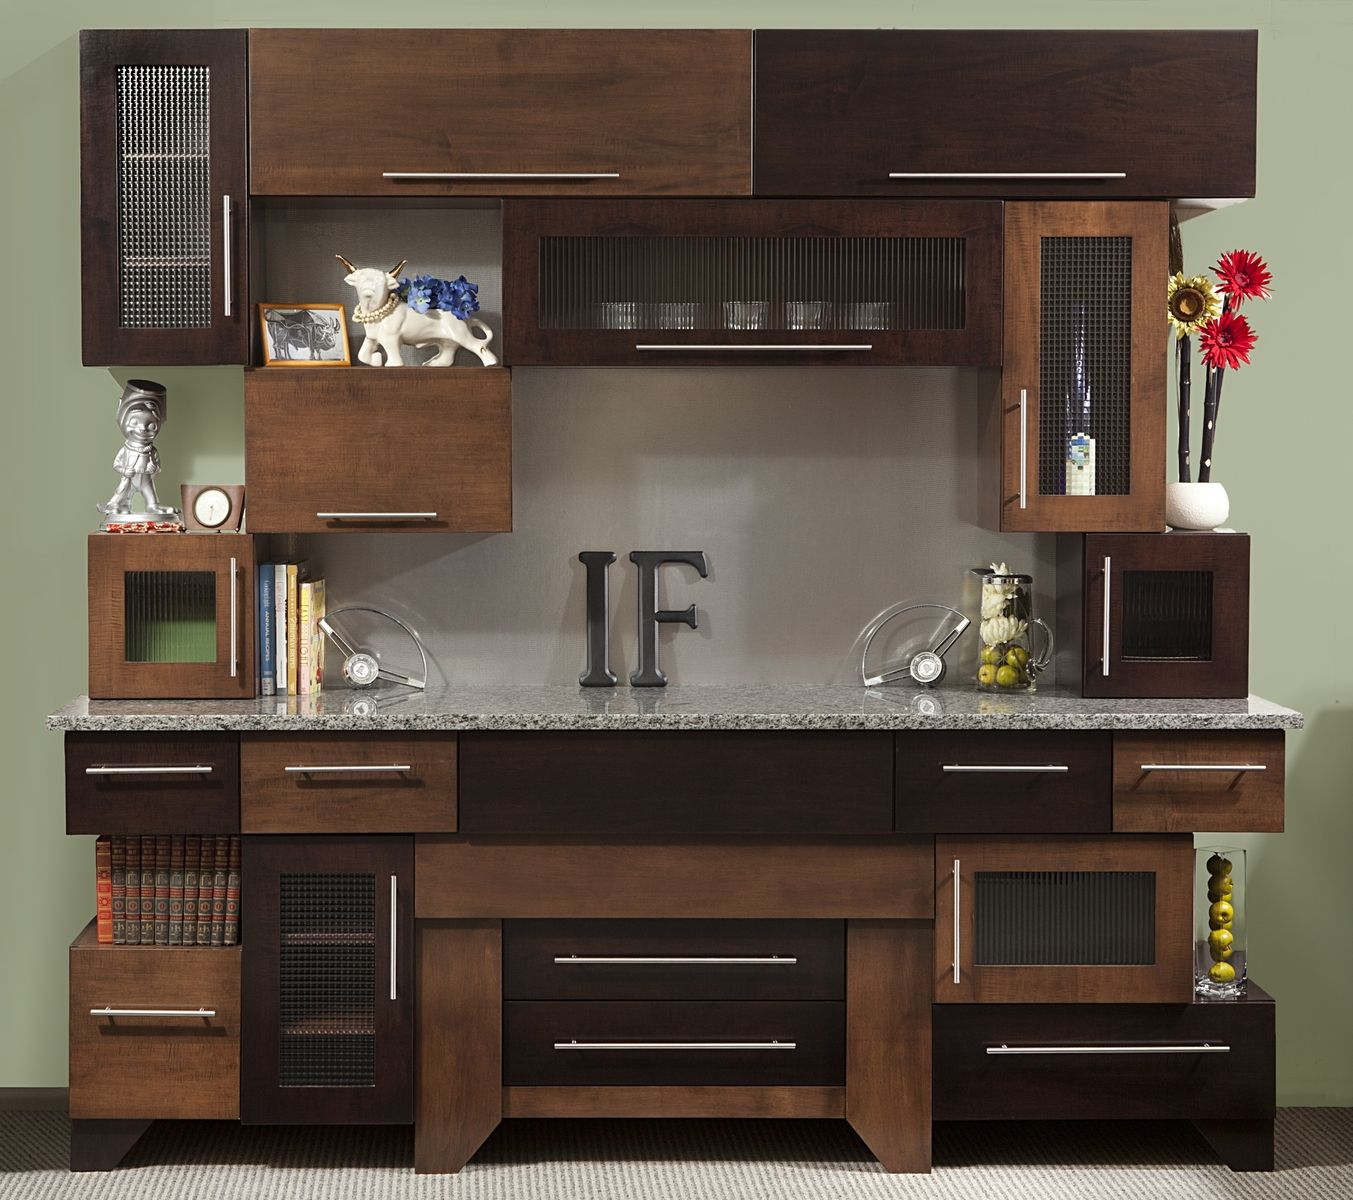 Hand made cubist cabinets kitchen modern clean in tiger for Modern kitchen furniture images